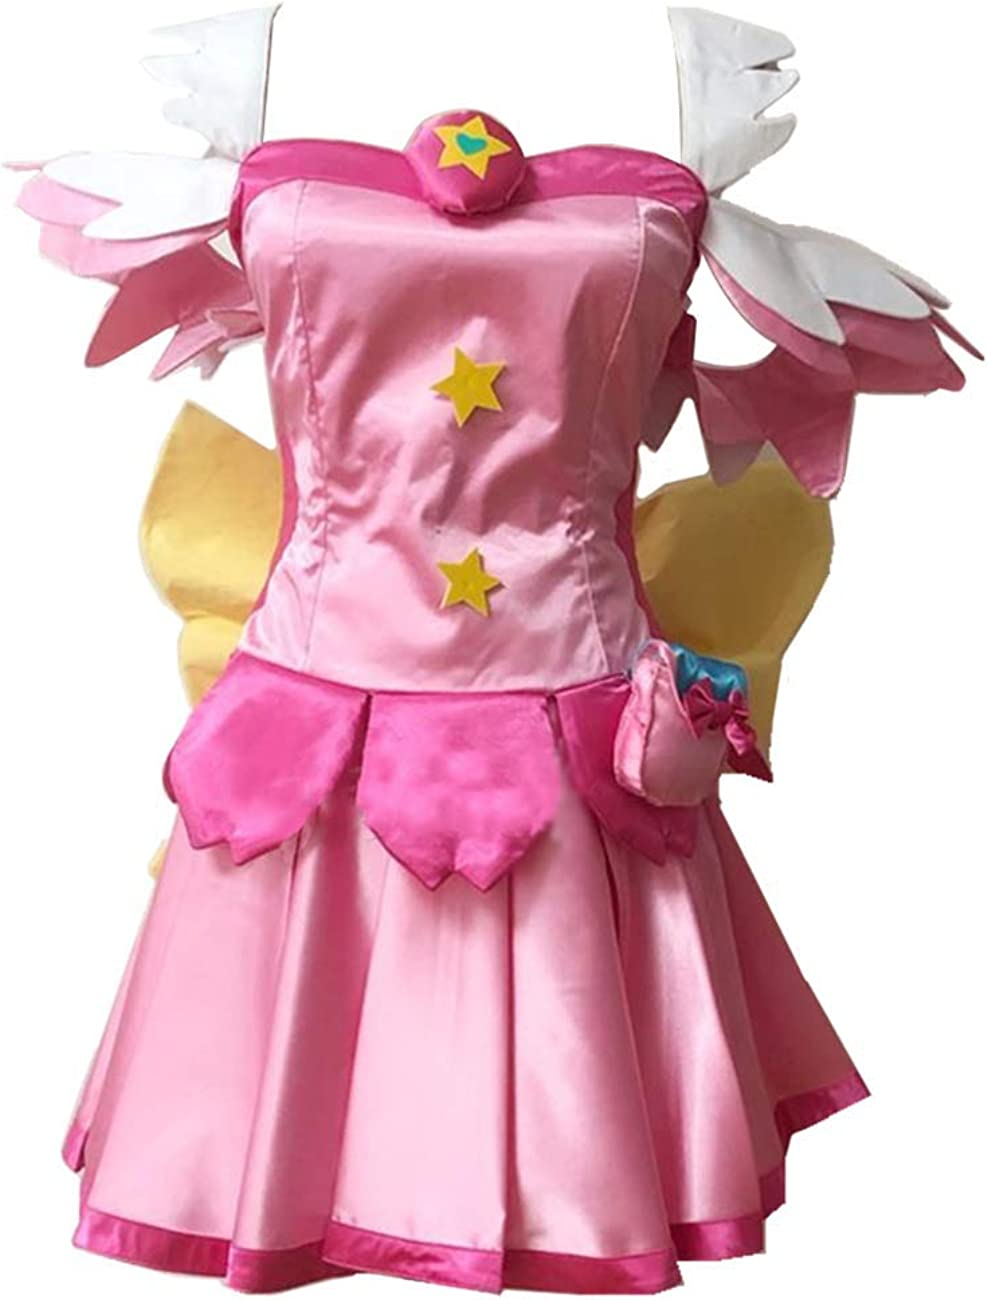 MYYH Anime Hoshina Hikaru Direct sale of manufacturer Cosplay Costume Dress Fancy New mail order